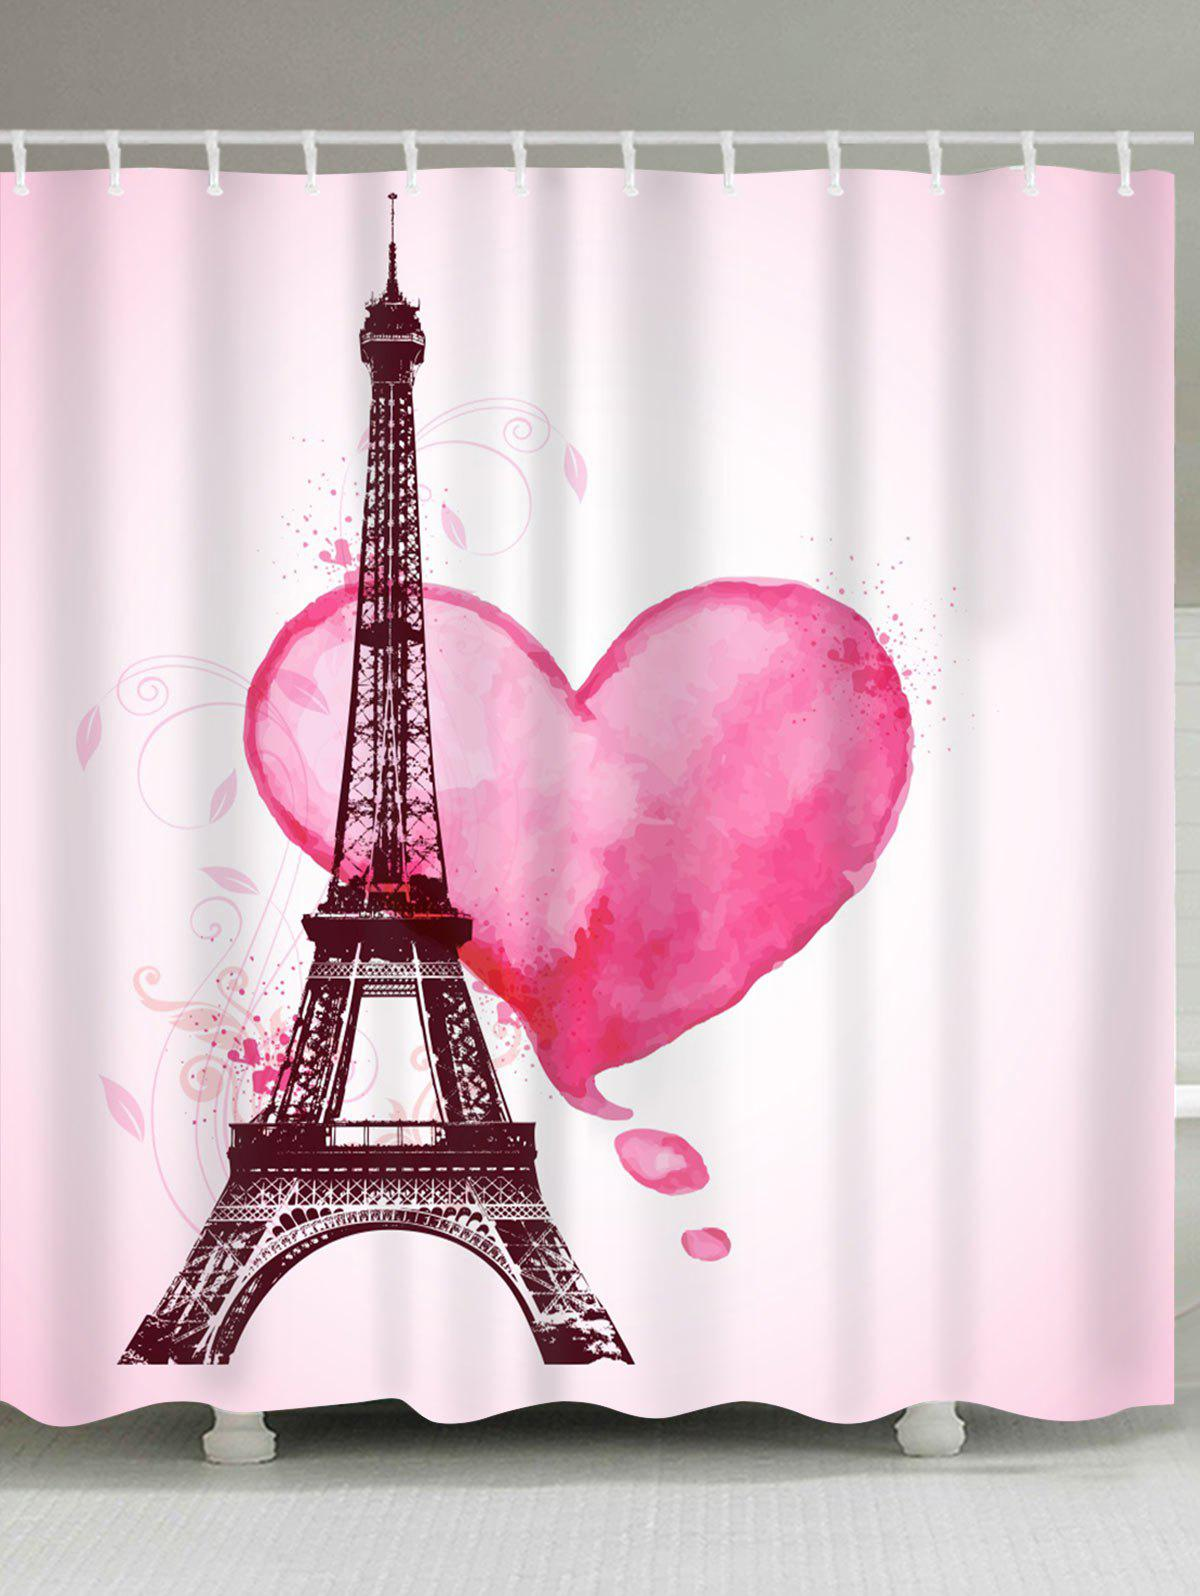 Store Valentine's  Day Eiffel Tower Heart Print Waterproof Bathroom Shower Curtain